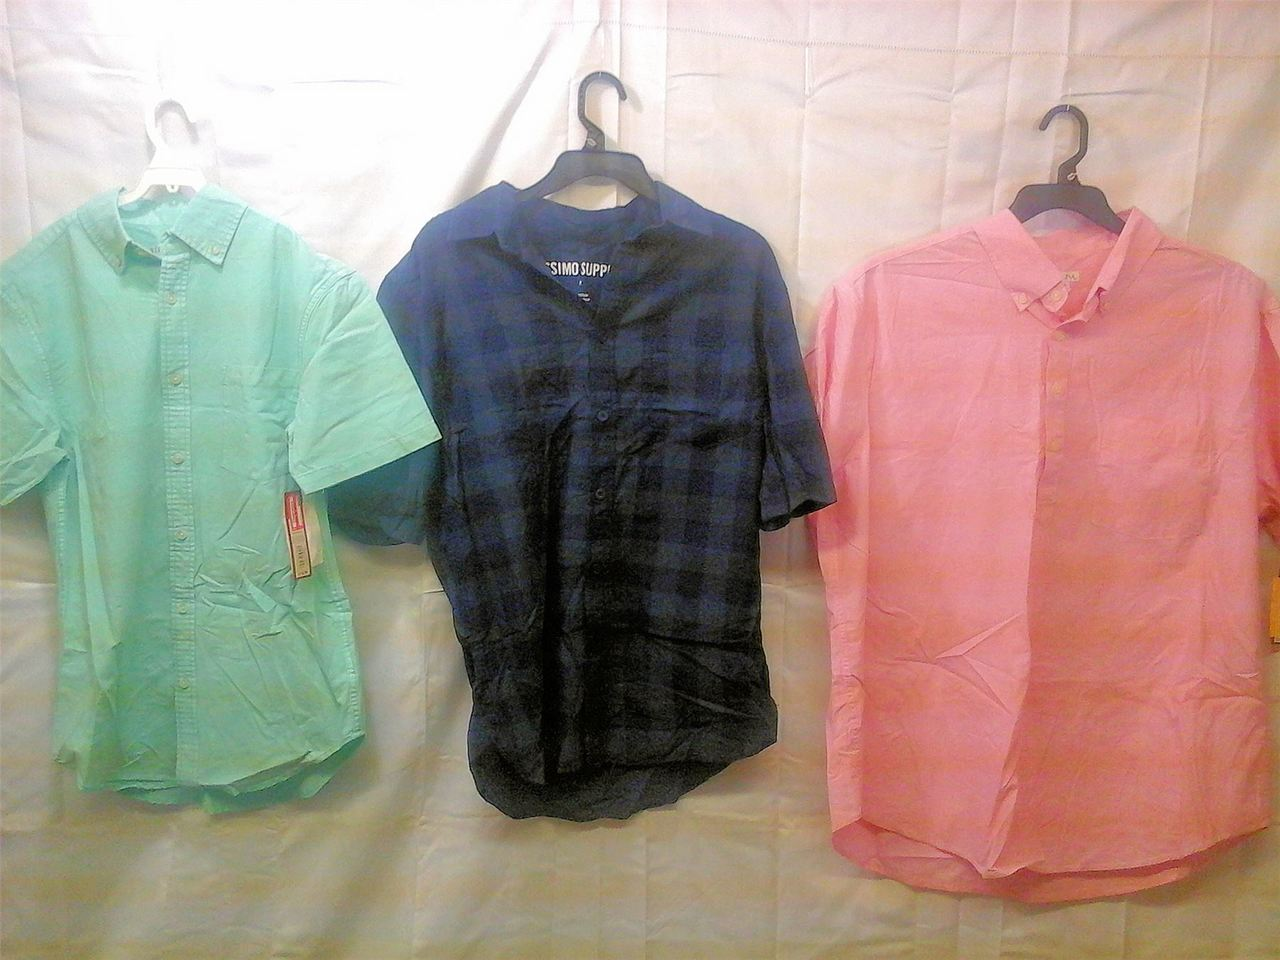 Wholesale Lot of Mens CLOTHING Brand New shirts shorts blazers jackets More Lot 1 Manifested